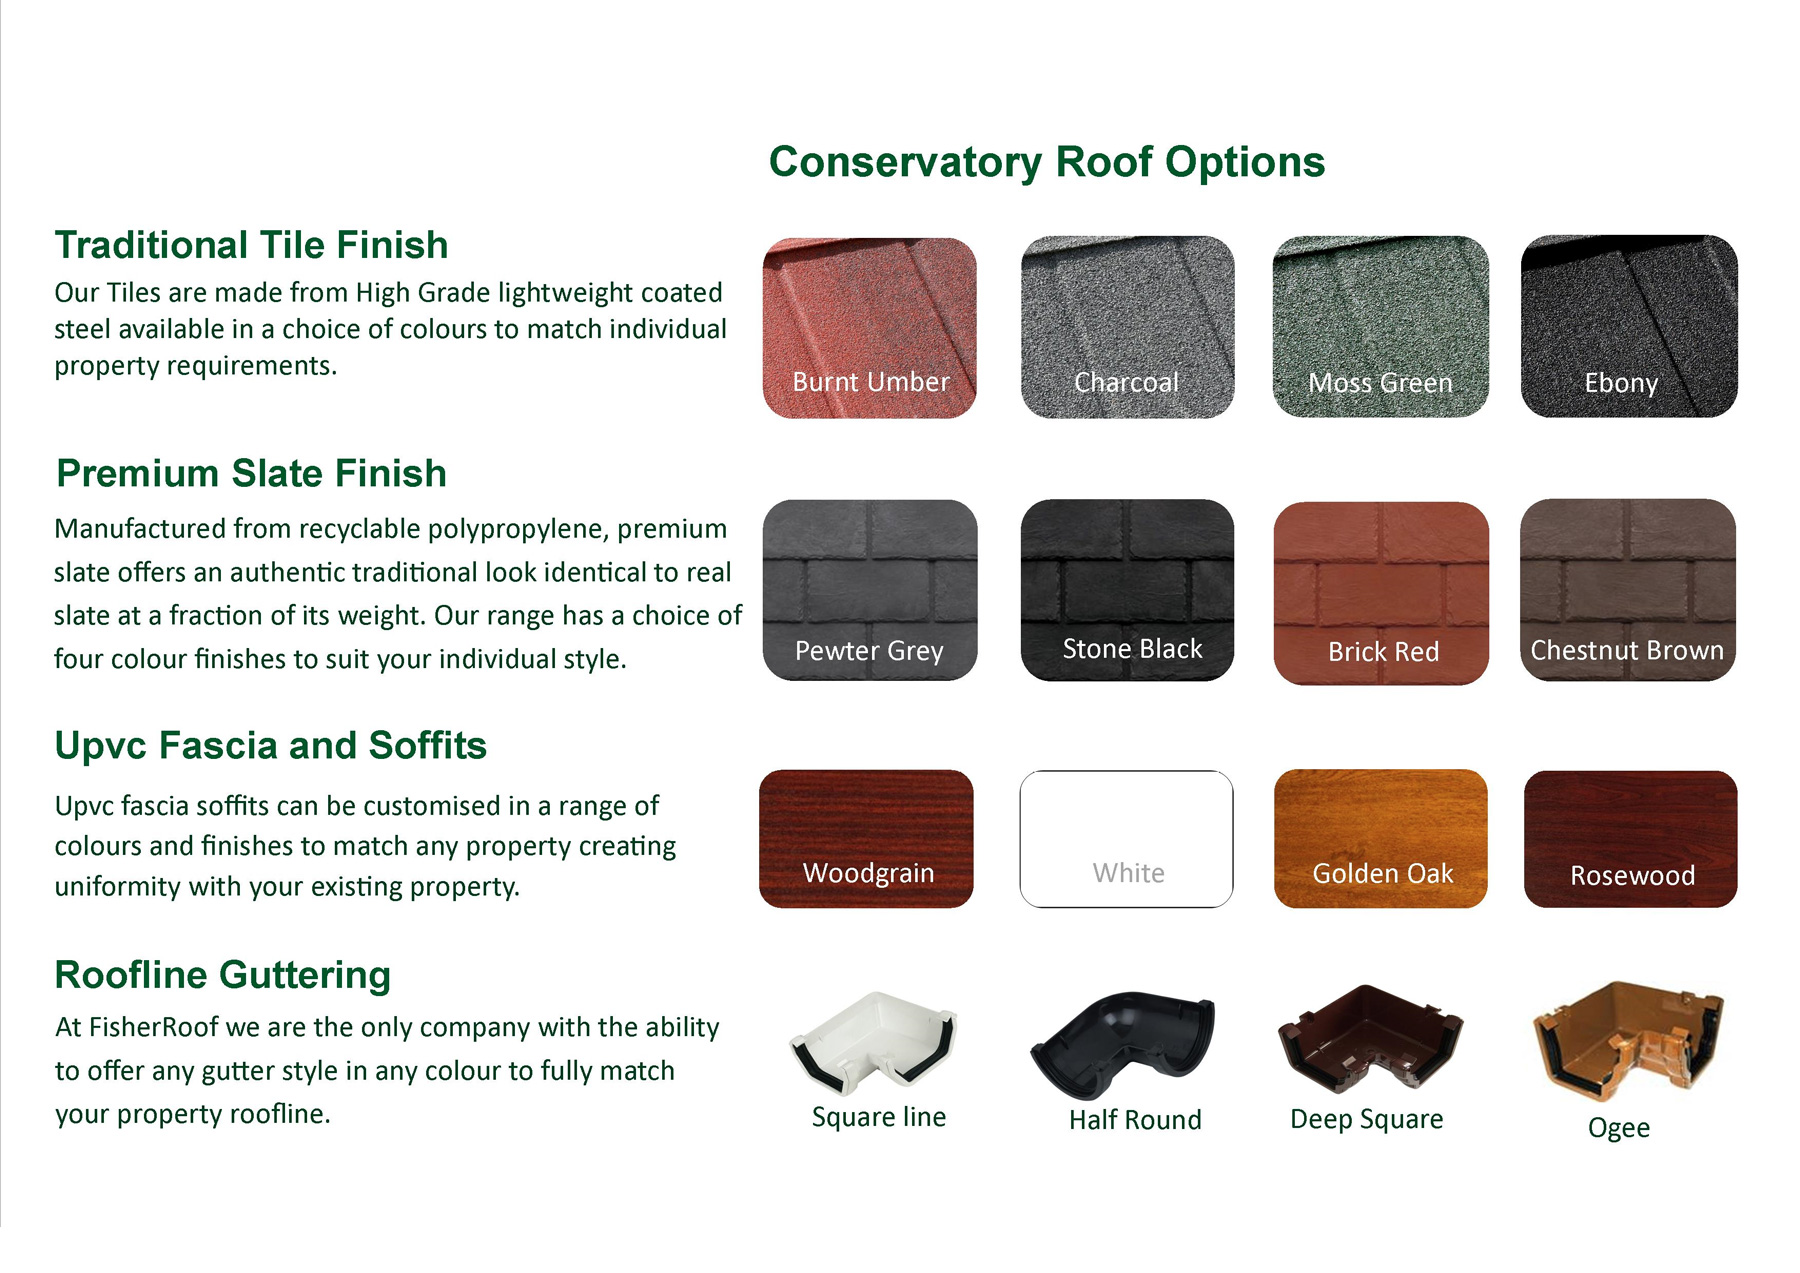 tiled roof-options lancashire